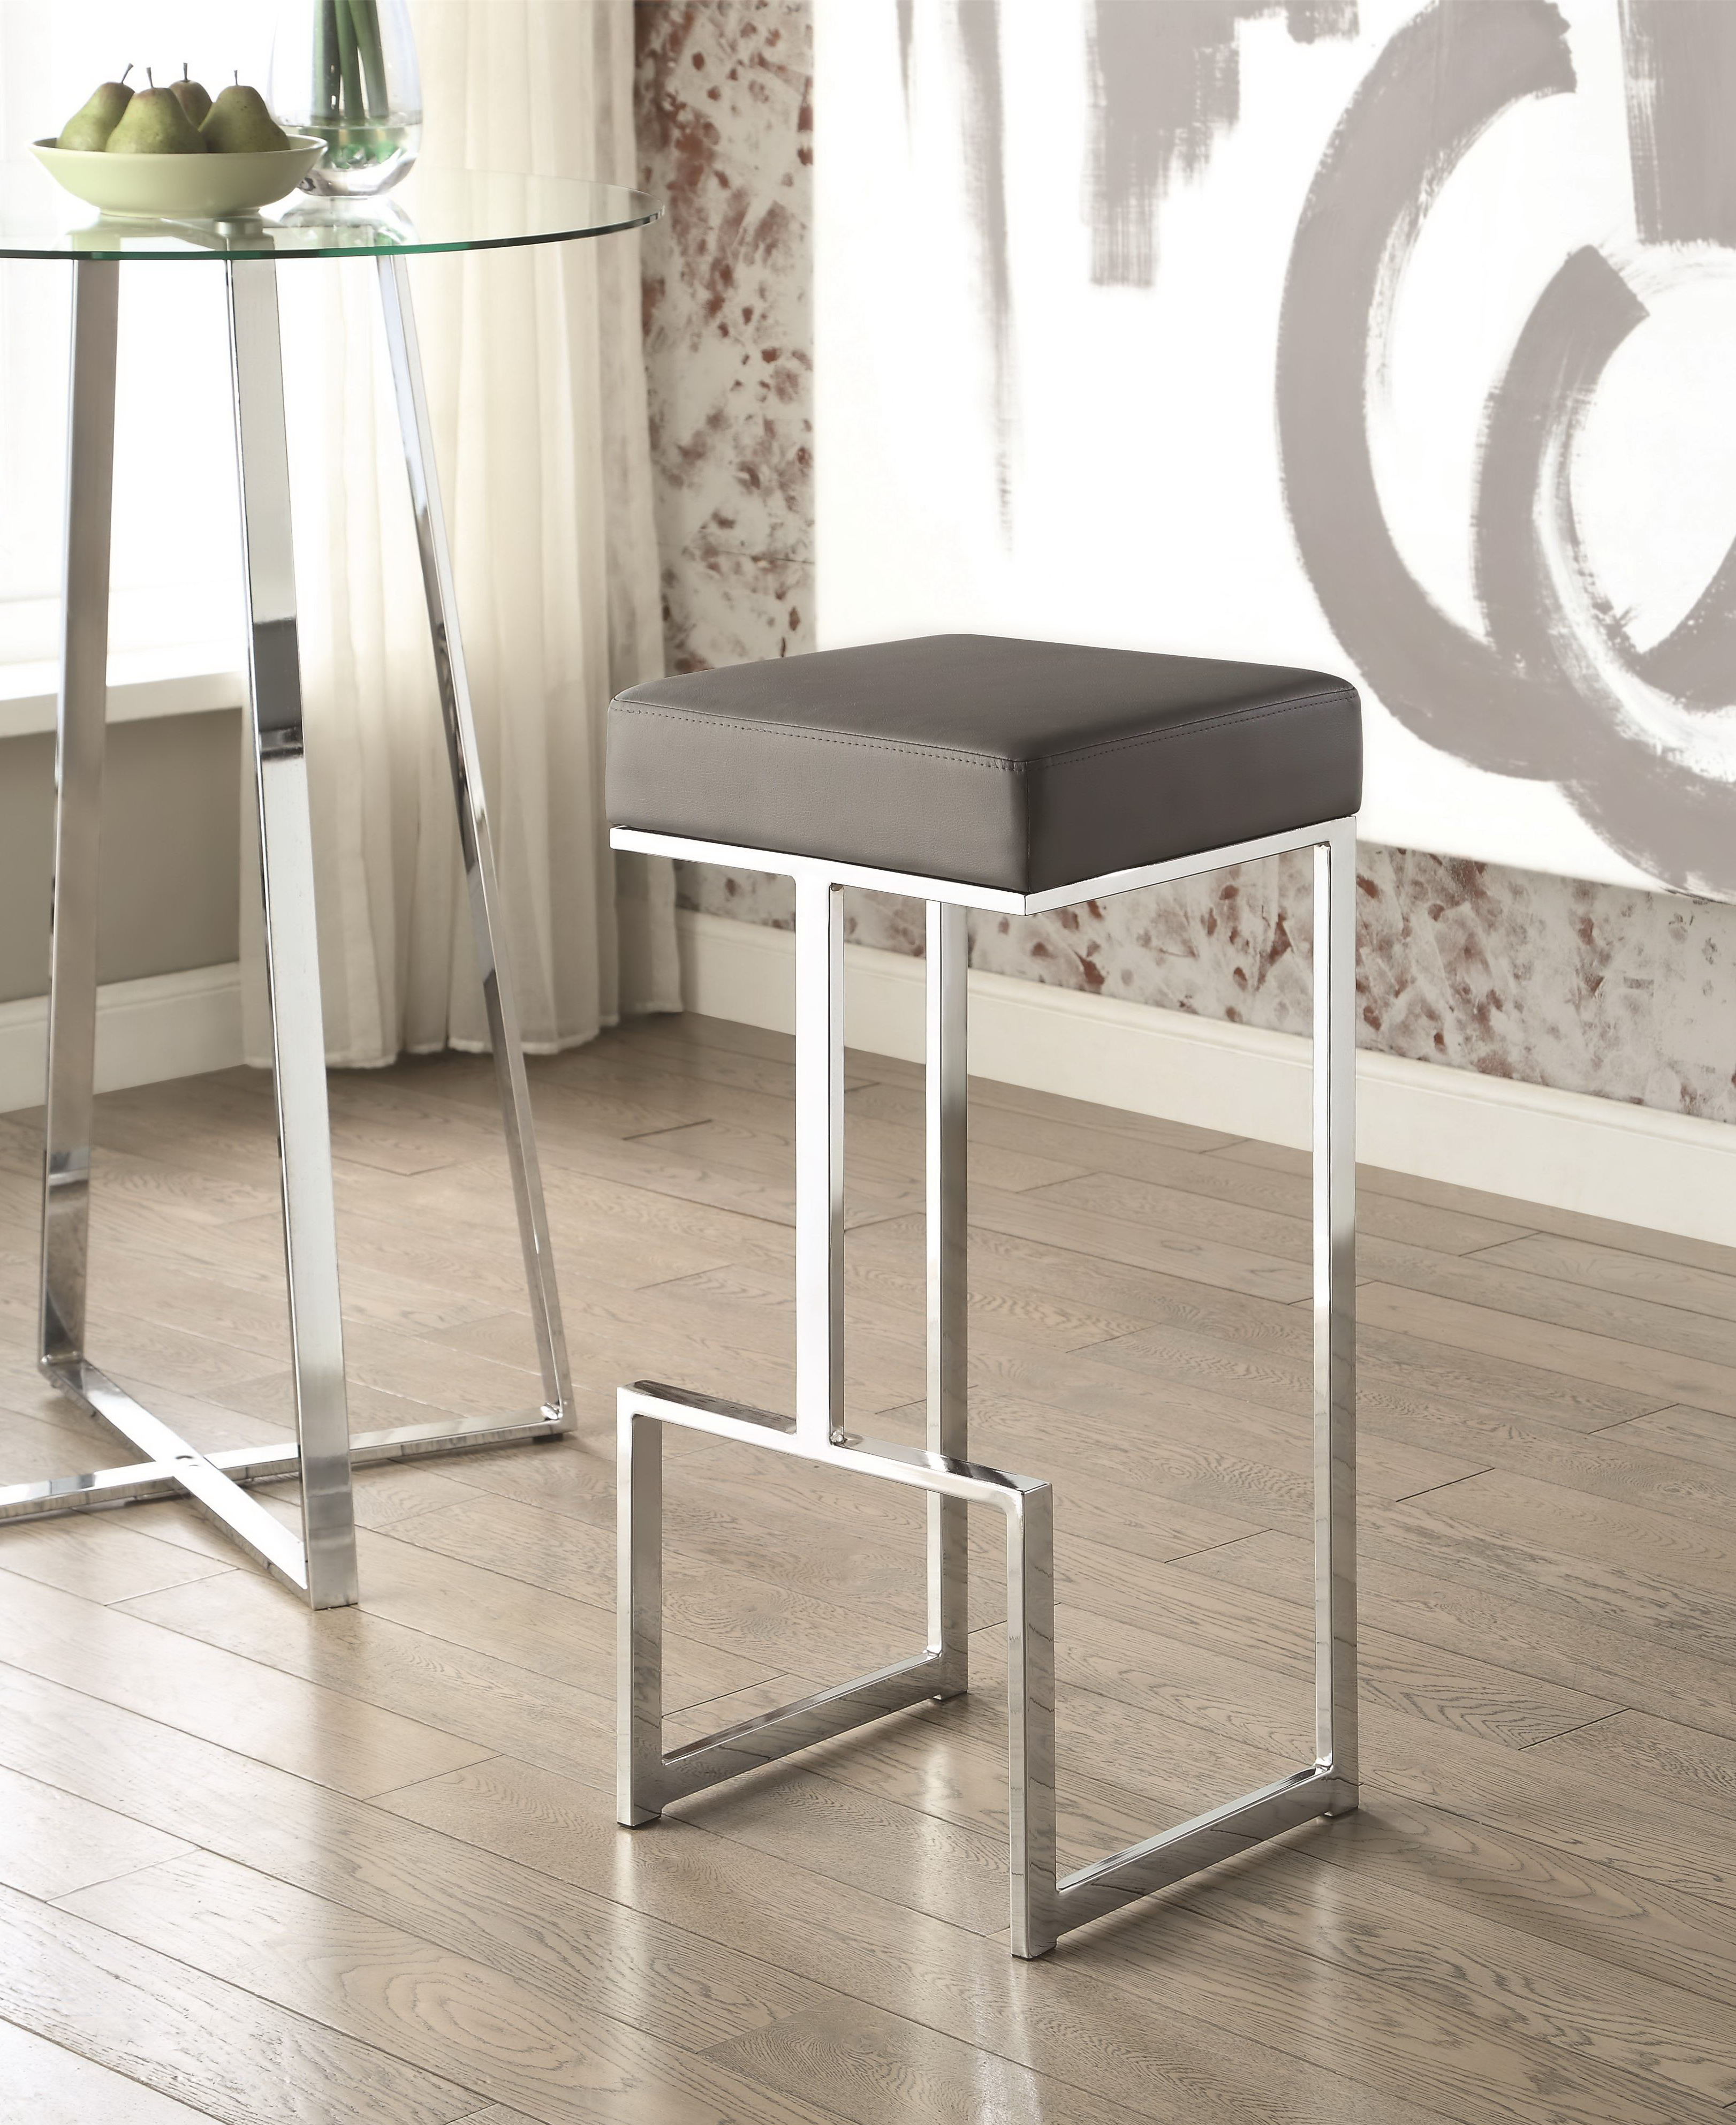 Sam S Club Counter Stools: Las Vegas Furniture Store